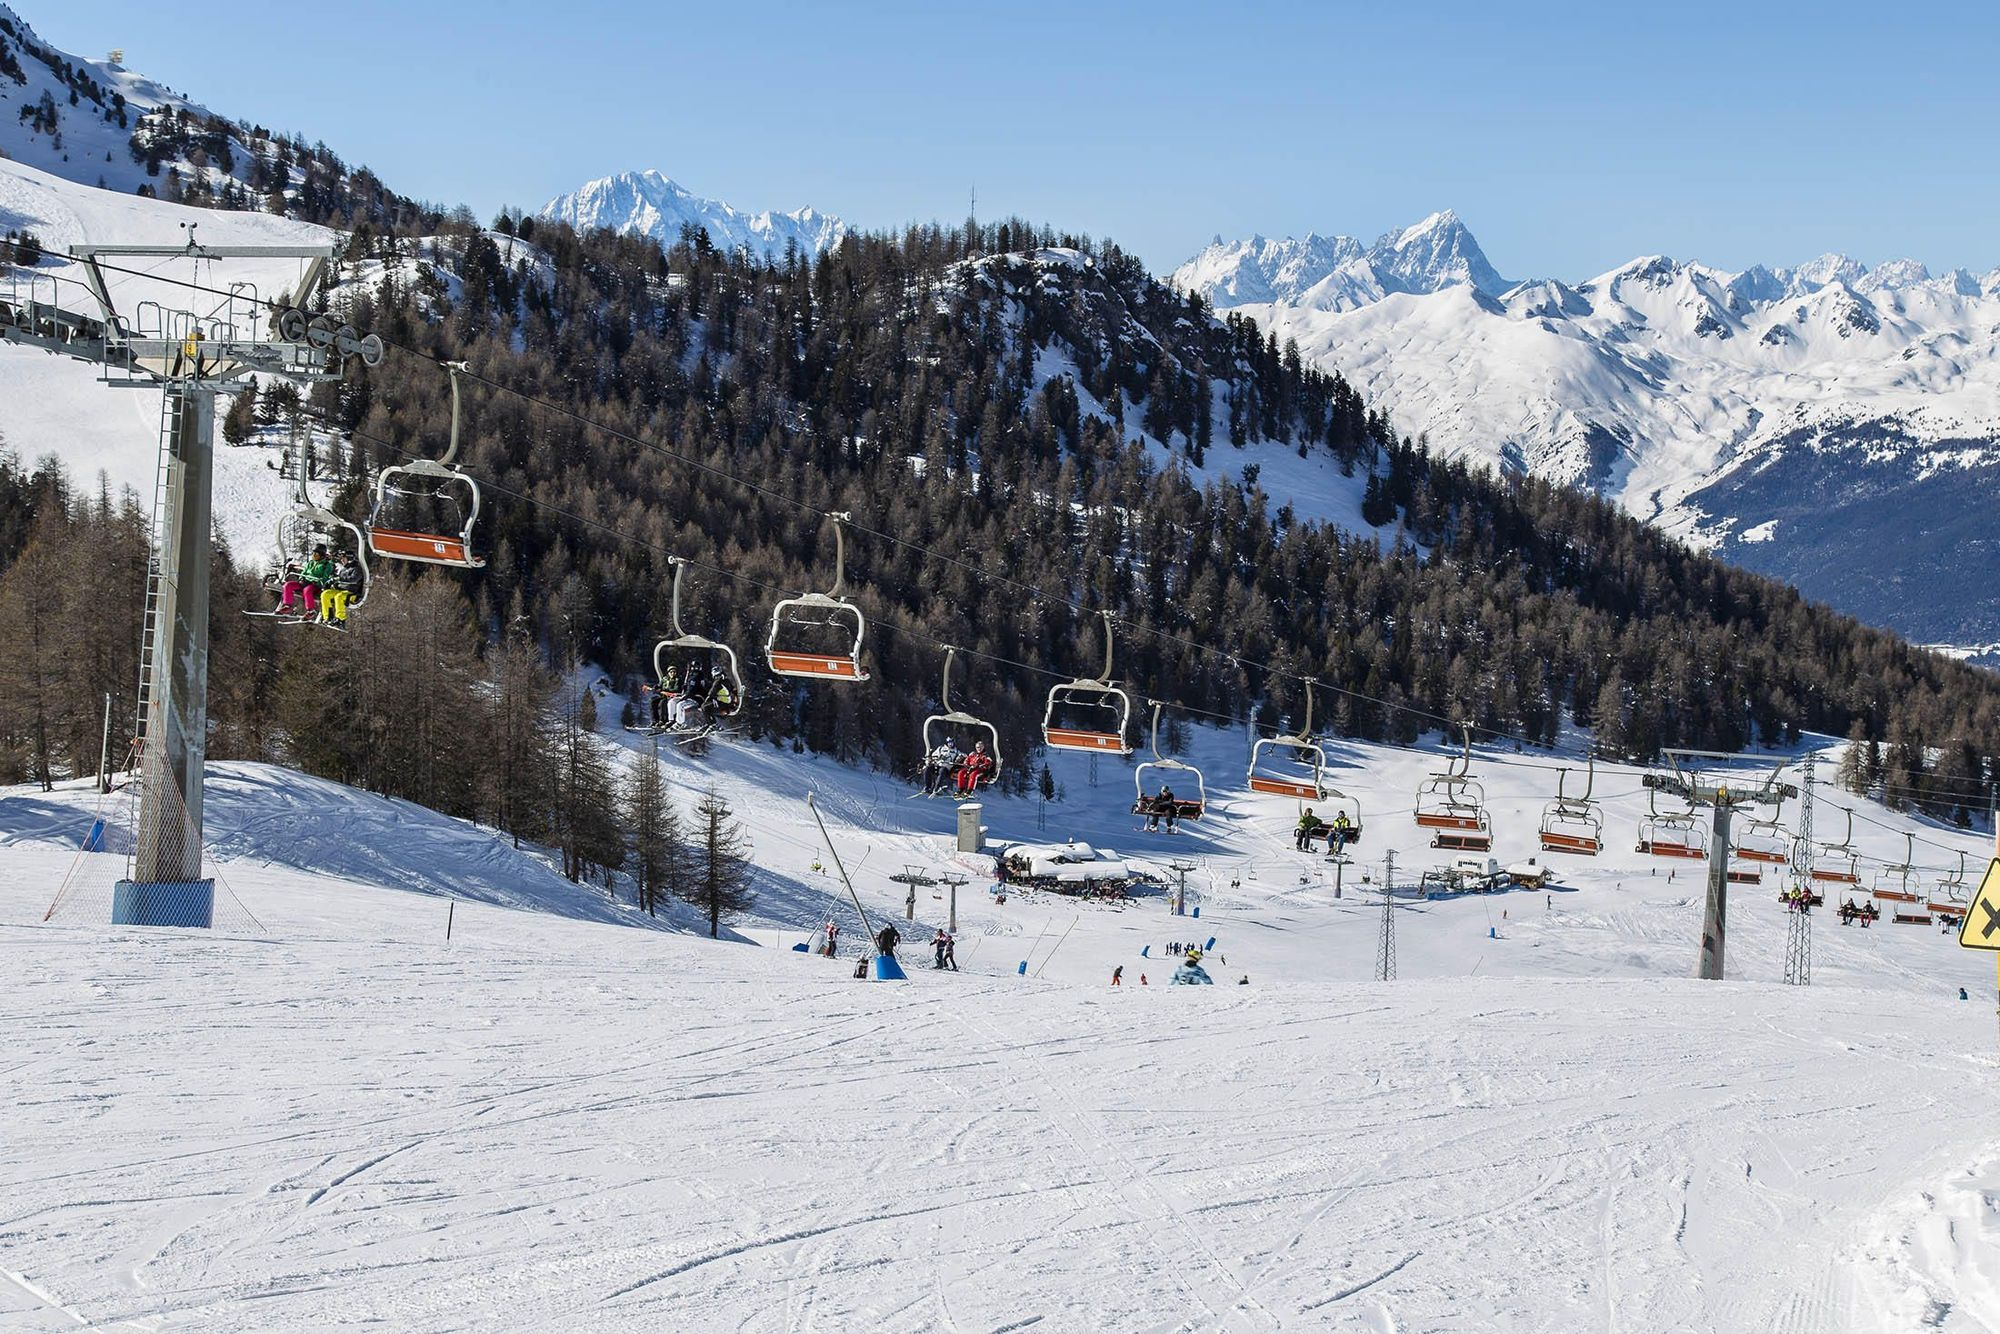 Chairlift in Pila